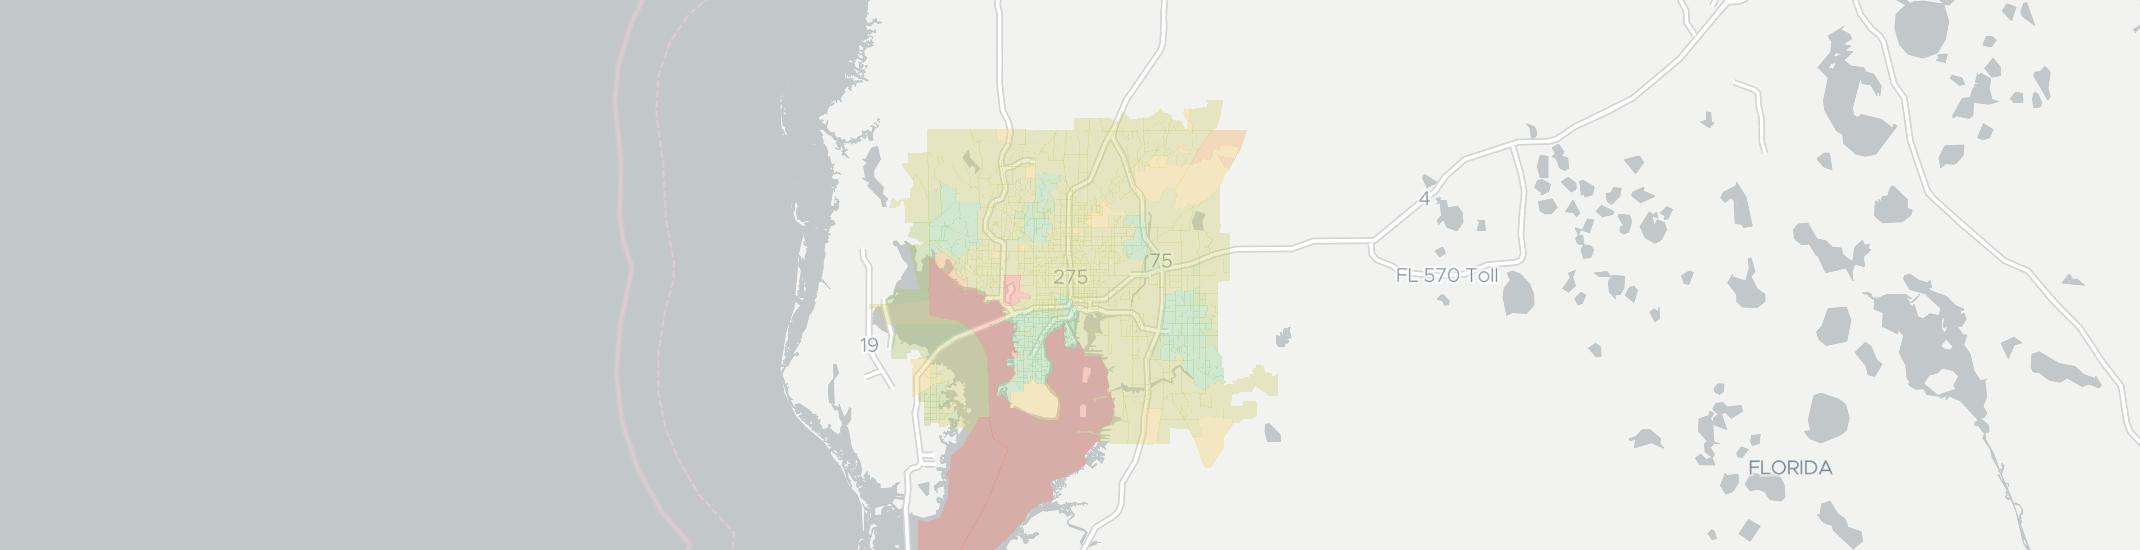 Tampa Internet Competition Map. Click for interactive map.